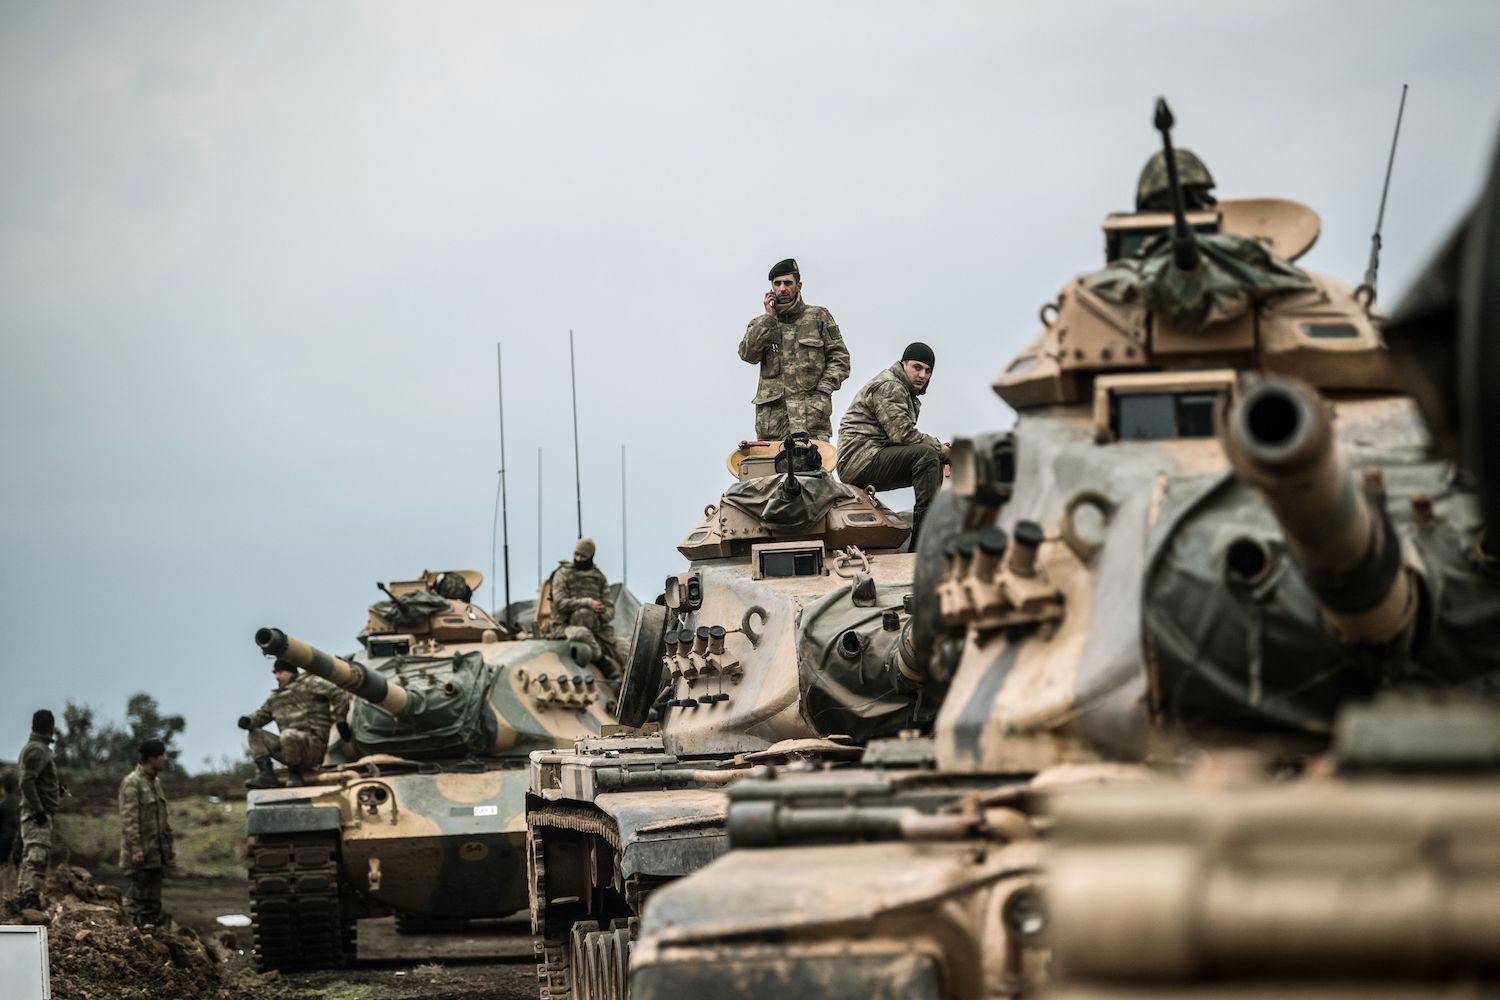 Turkey Armed Syrian Militants With U.S.-Made Anti-Aircraft Weapons: Russian Military Source